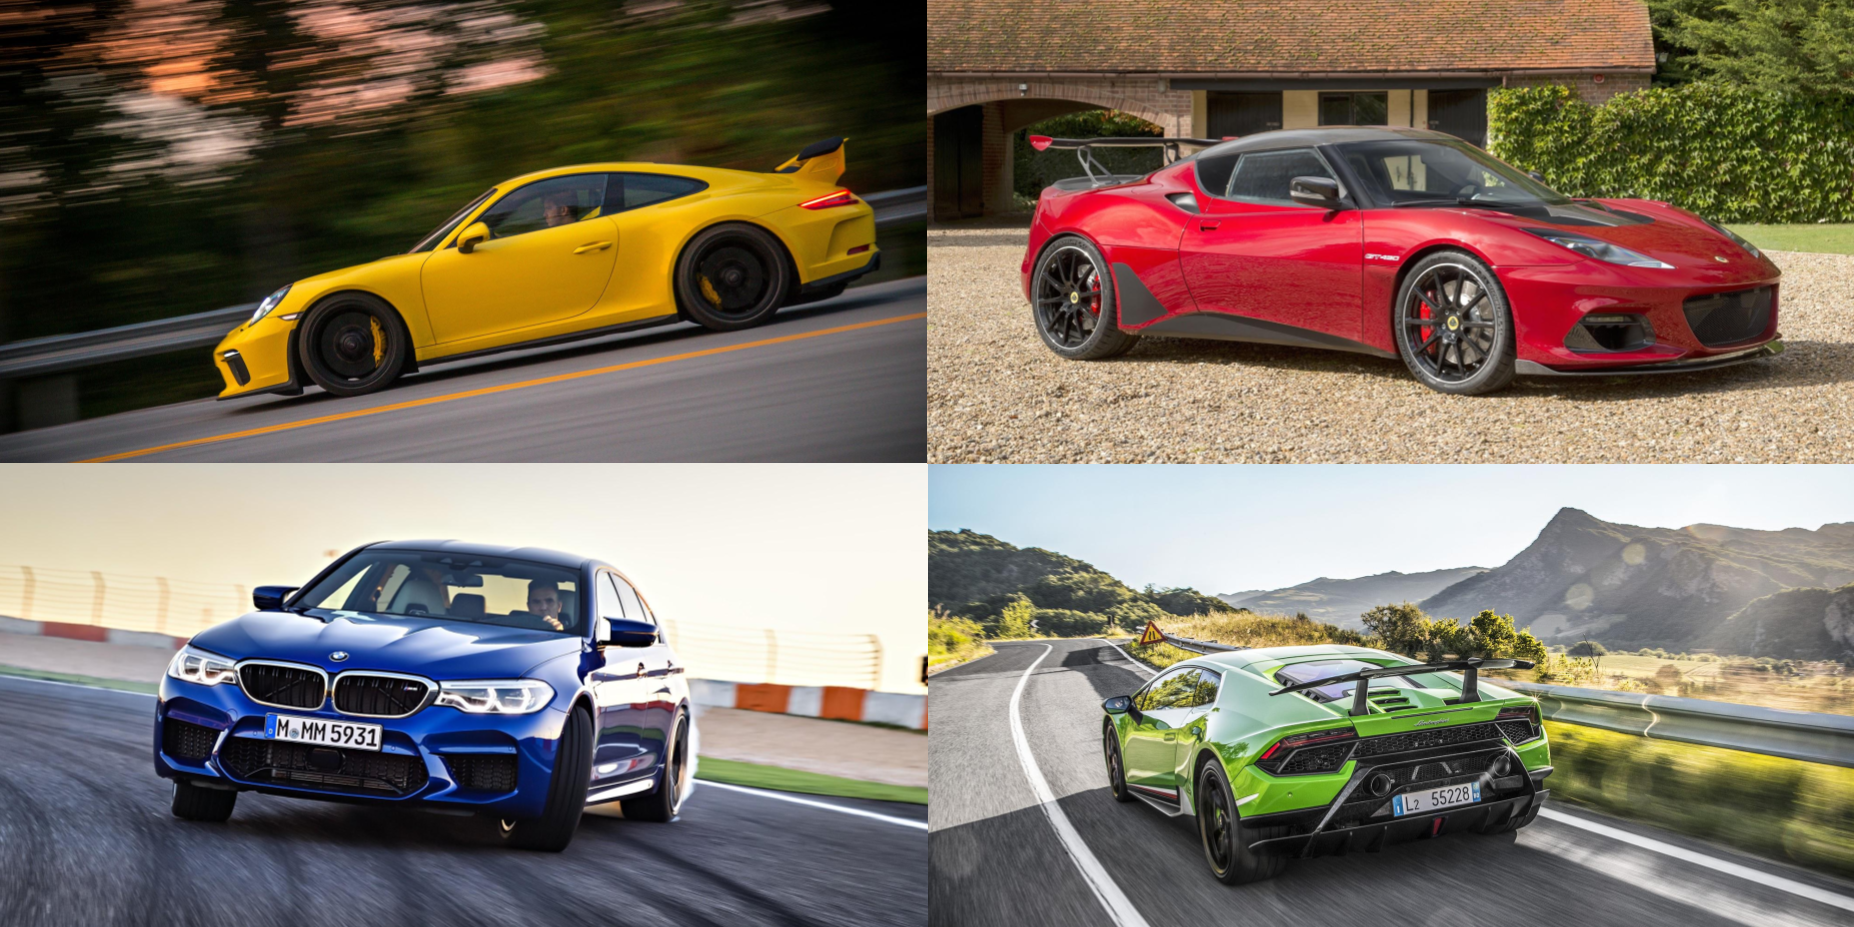 25 Best Cars of 2018 (So Far) - Best New Cars to Buy and Drive in 2018